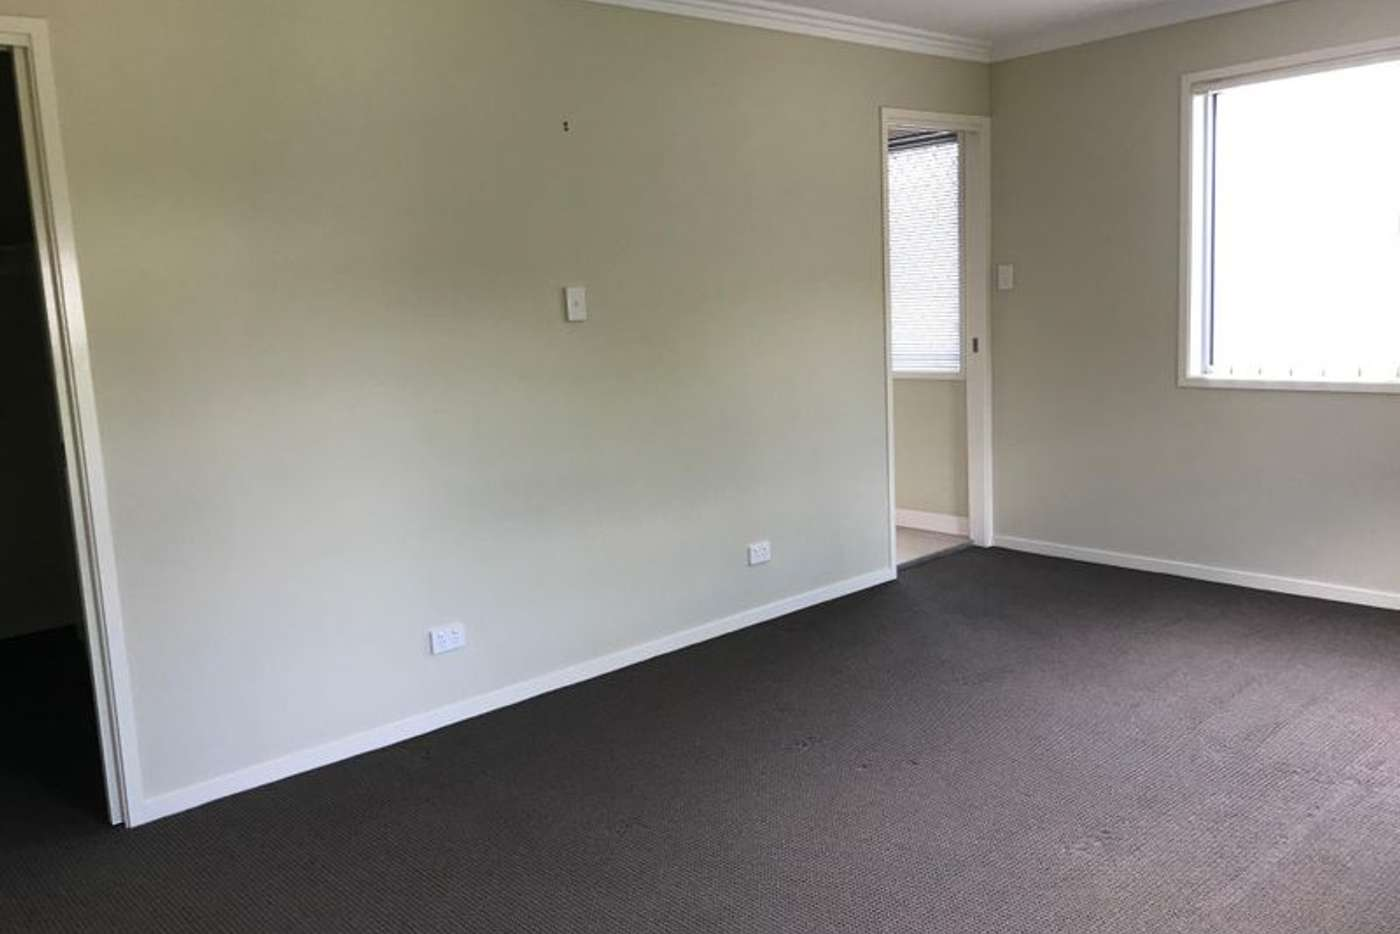 Seventh view of Homely house listing, 3 Berrimilla Lane, Coomera QLD 4209